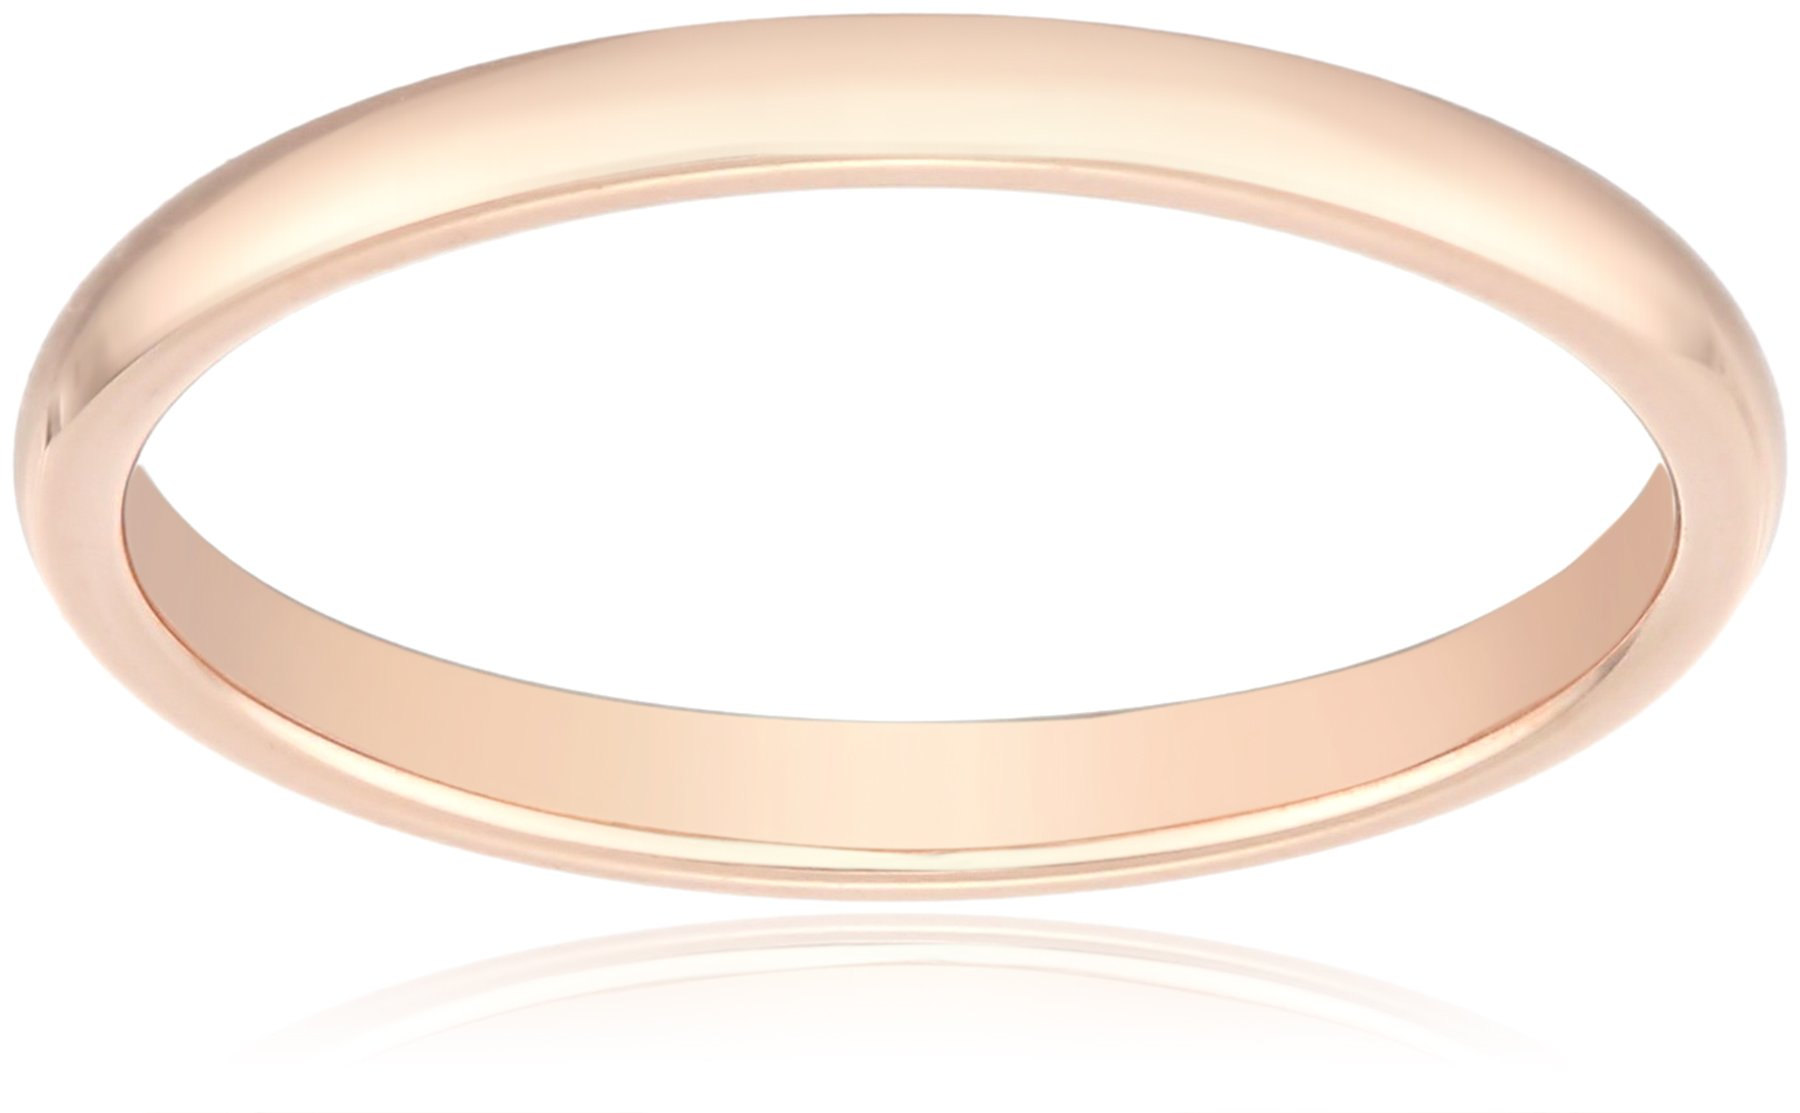 Classic Fit 14K Rose Gold Band, 2mm, Size 10